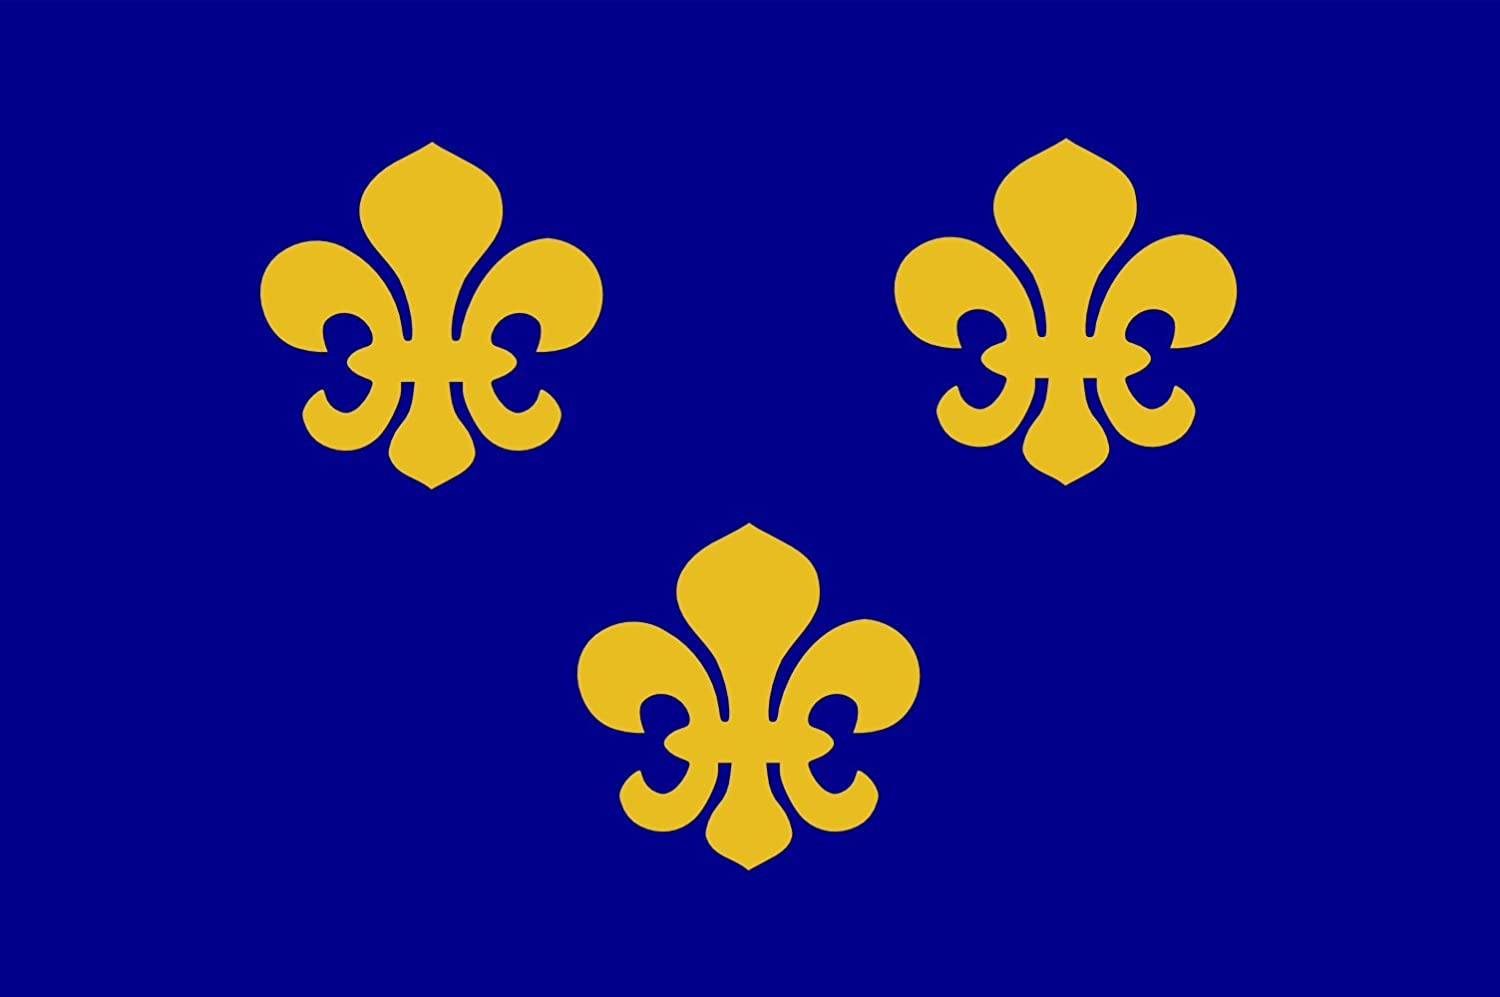 Present Day s /Île-de-France In 1328 The Coat-of-arms of The House of Valois was Blue with Gold Fleurs-de-lis Bordered in red 20x30c DIPLOMAT Flagge Medieval France Querformat Fahne 0.06m/²